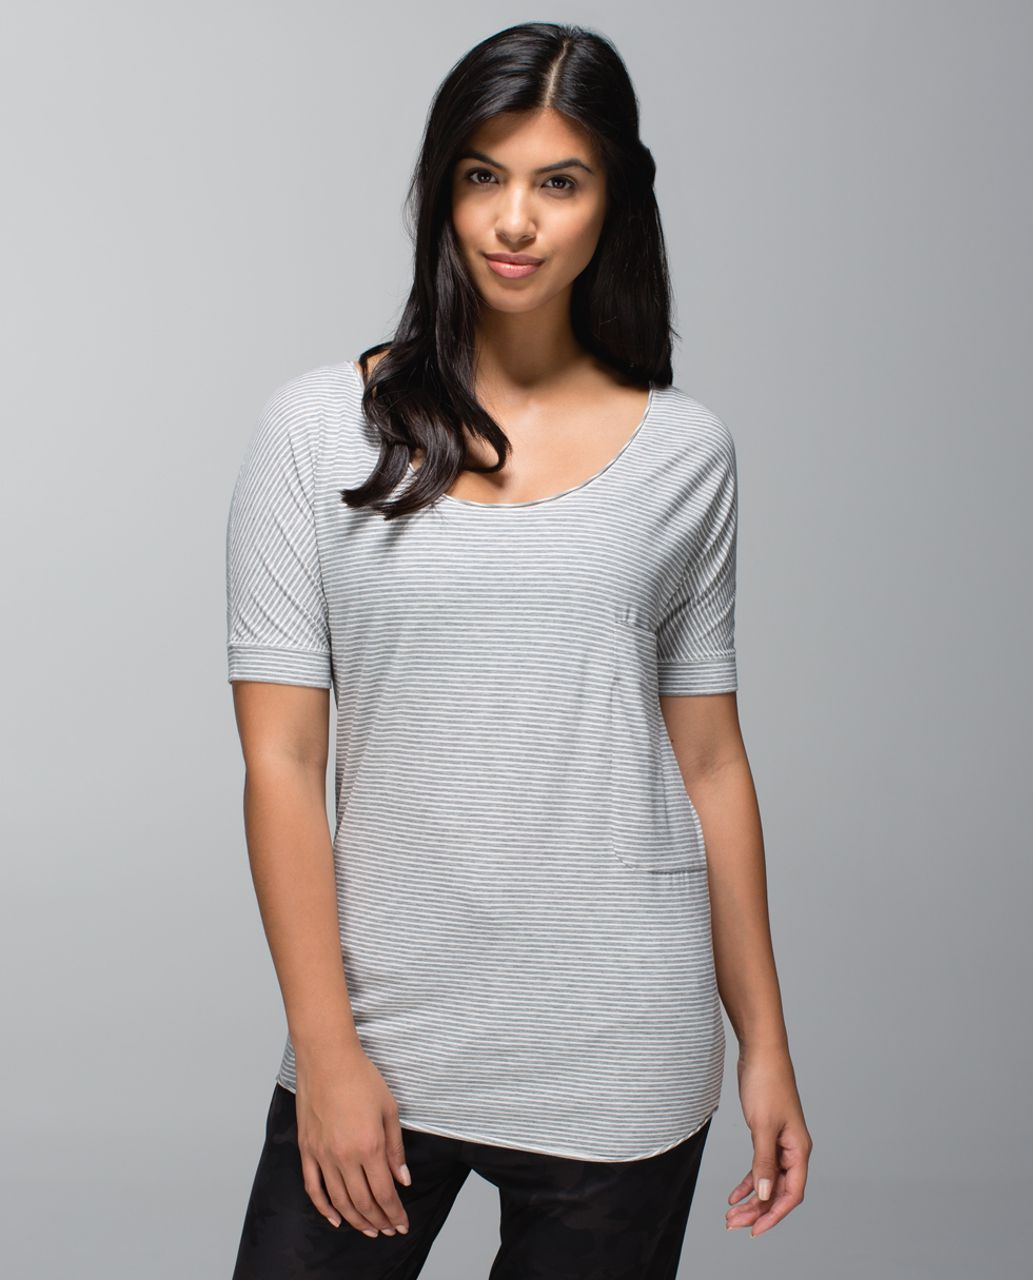 Lululemon Ravi Tee - Hyper Stripe Heathered Medium Grey Ghost